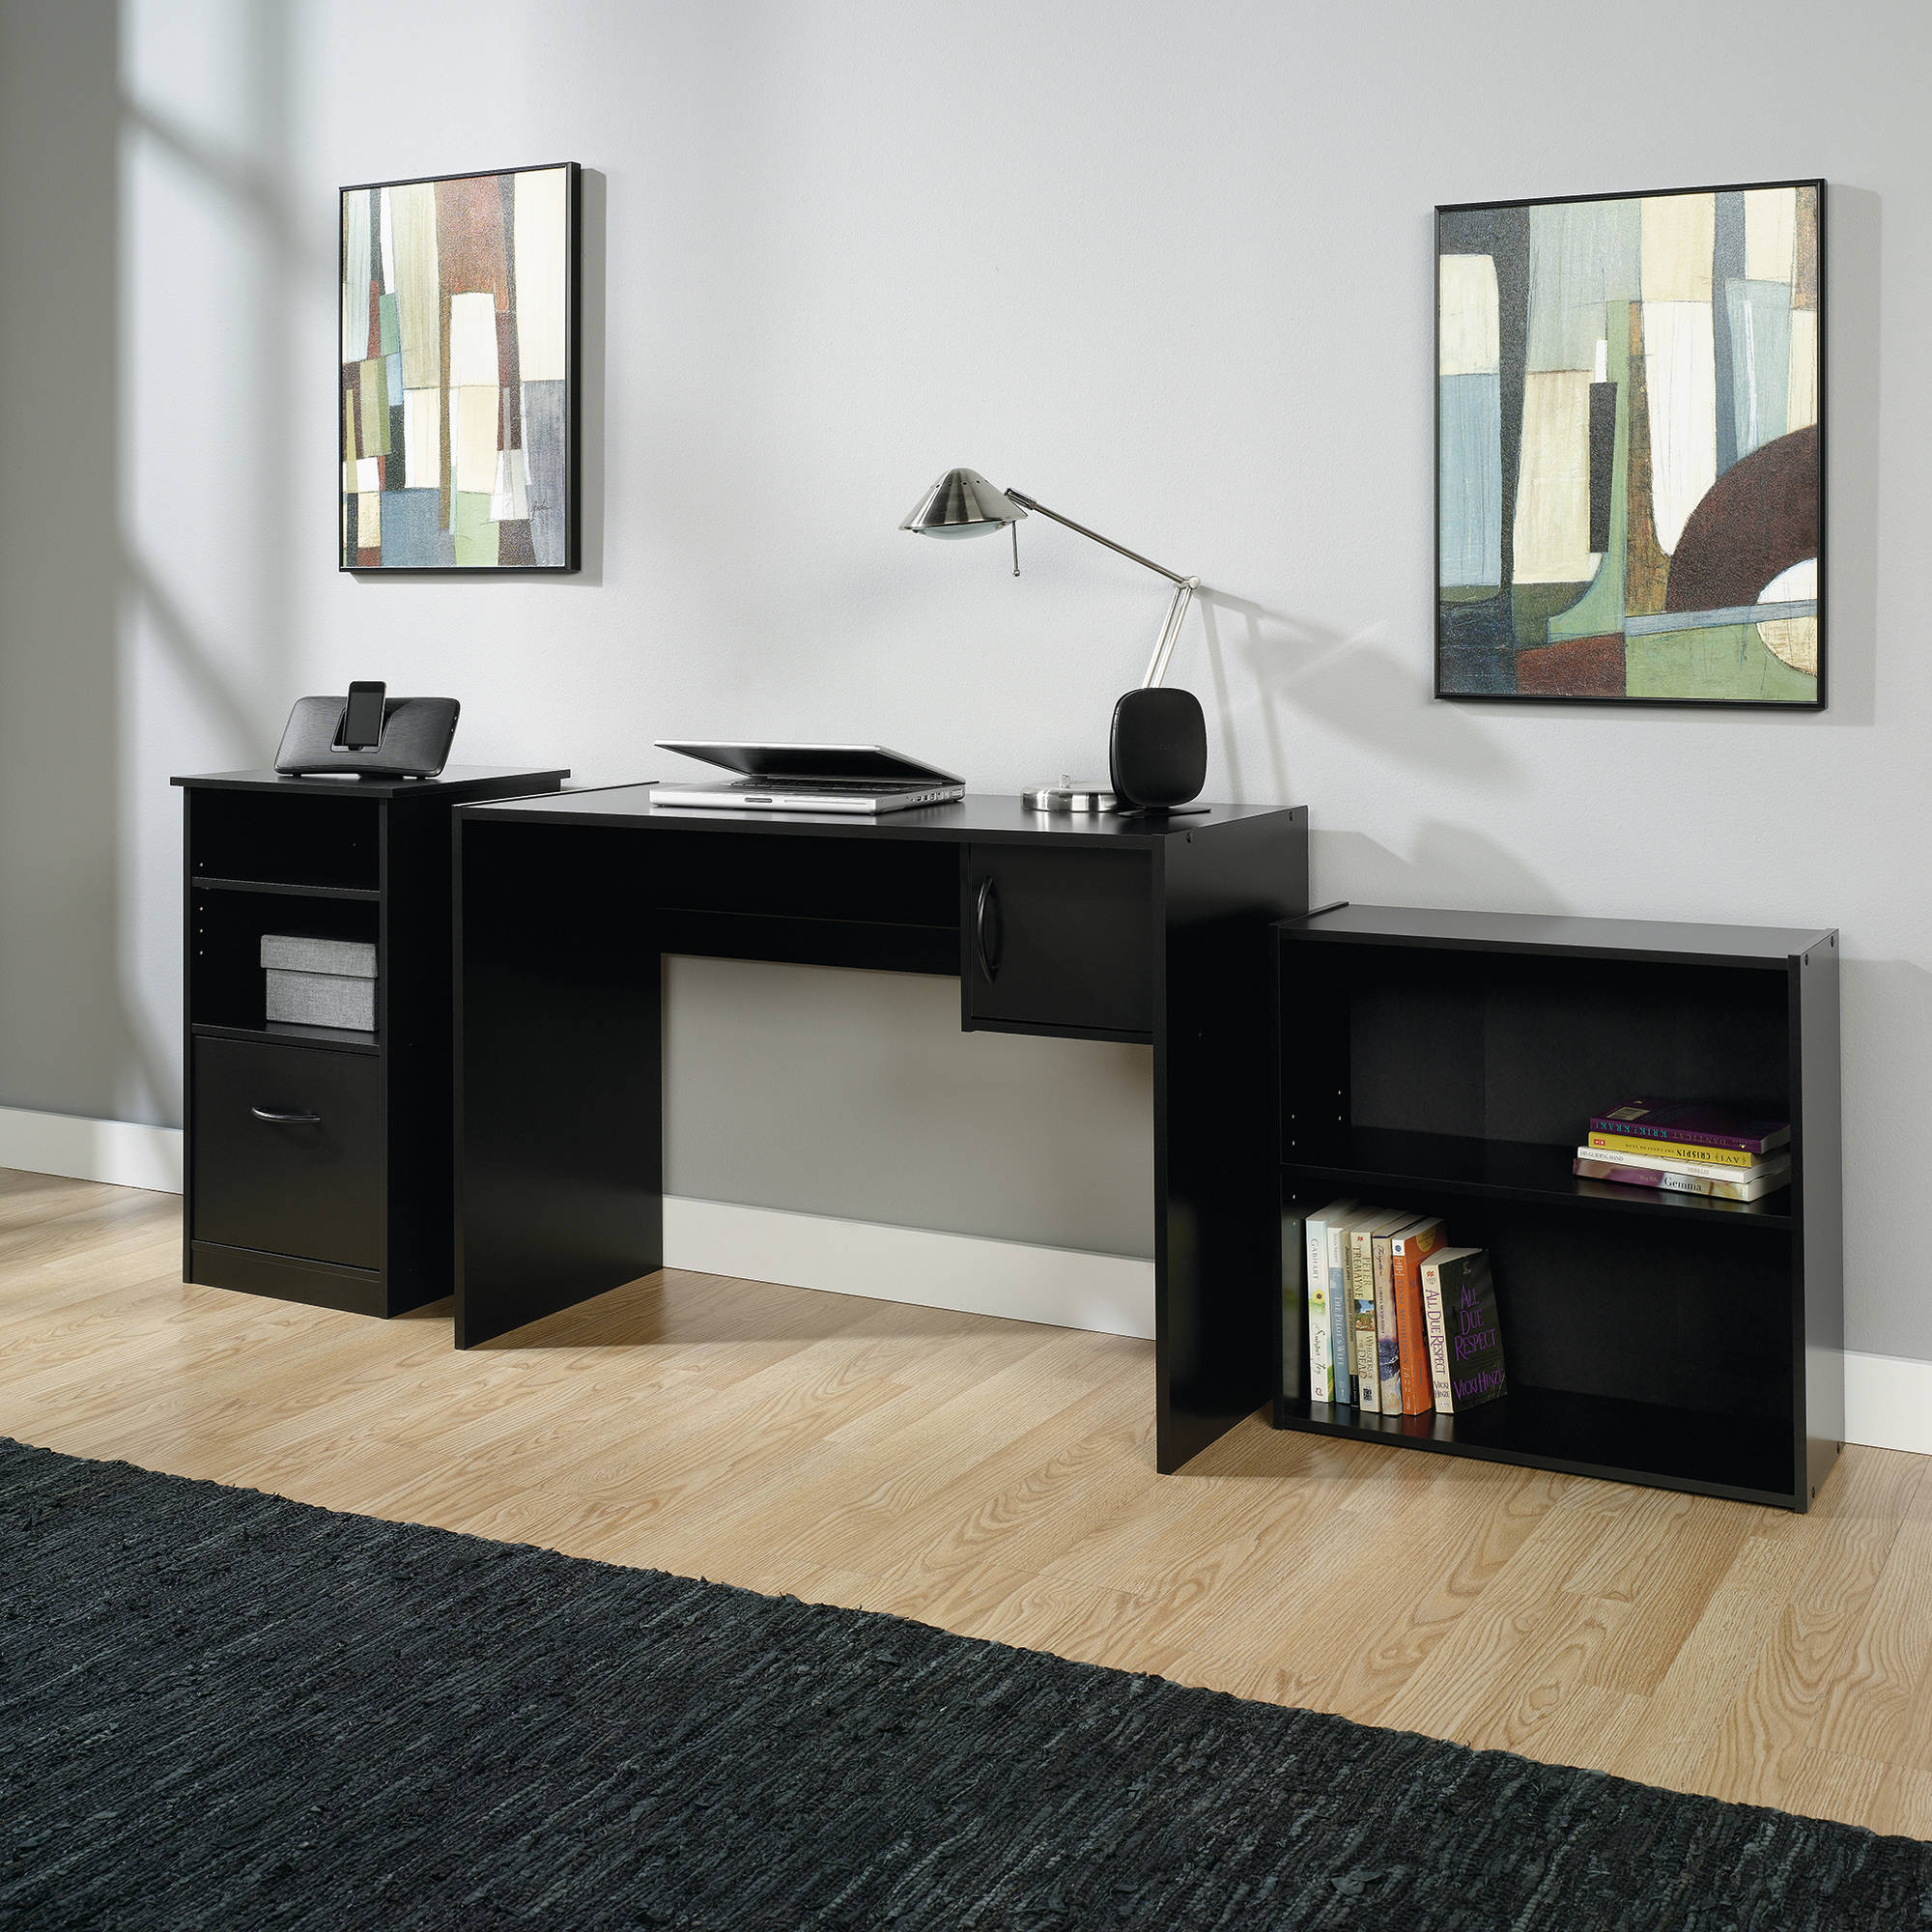 Mainstays 3-Piece Office Set, Black